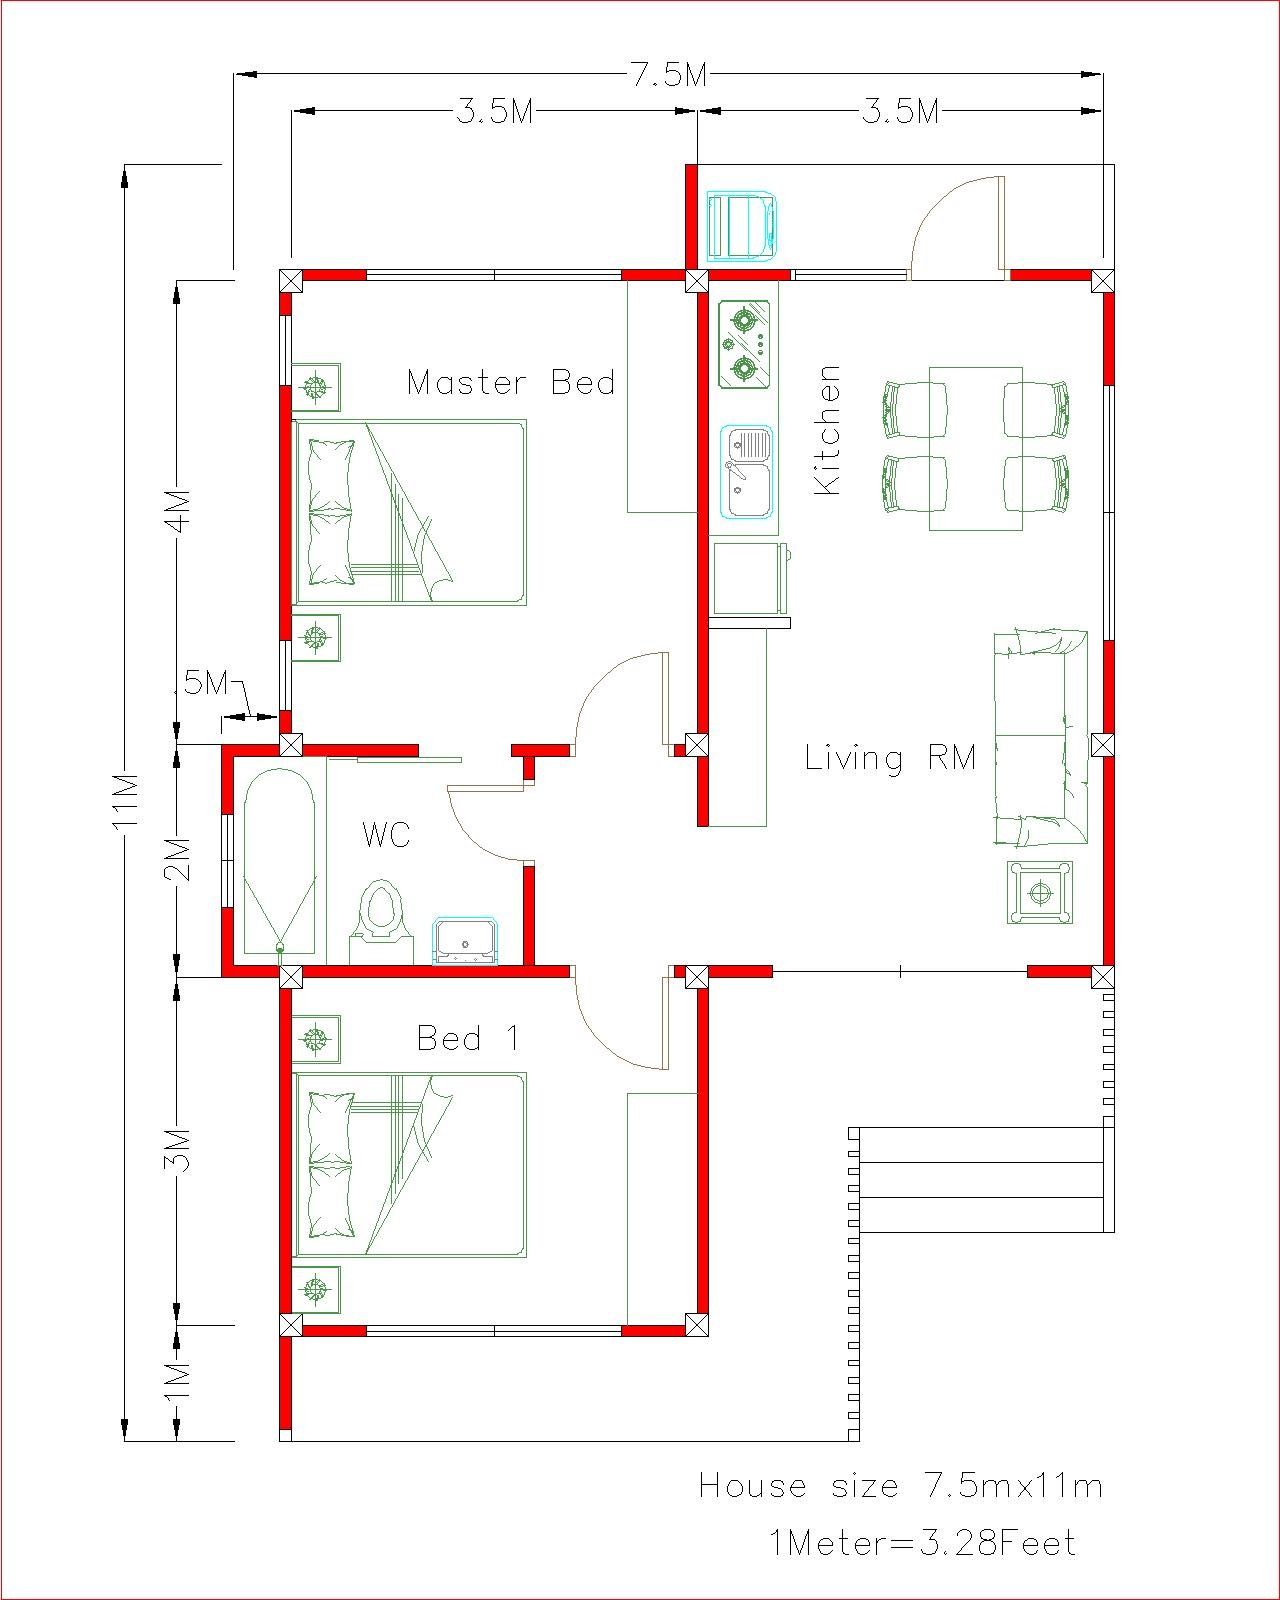 Small House Plans 7.5x11 with 2 Beds Full plans